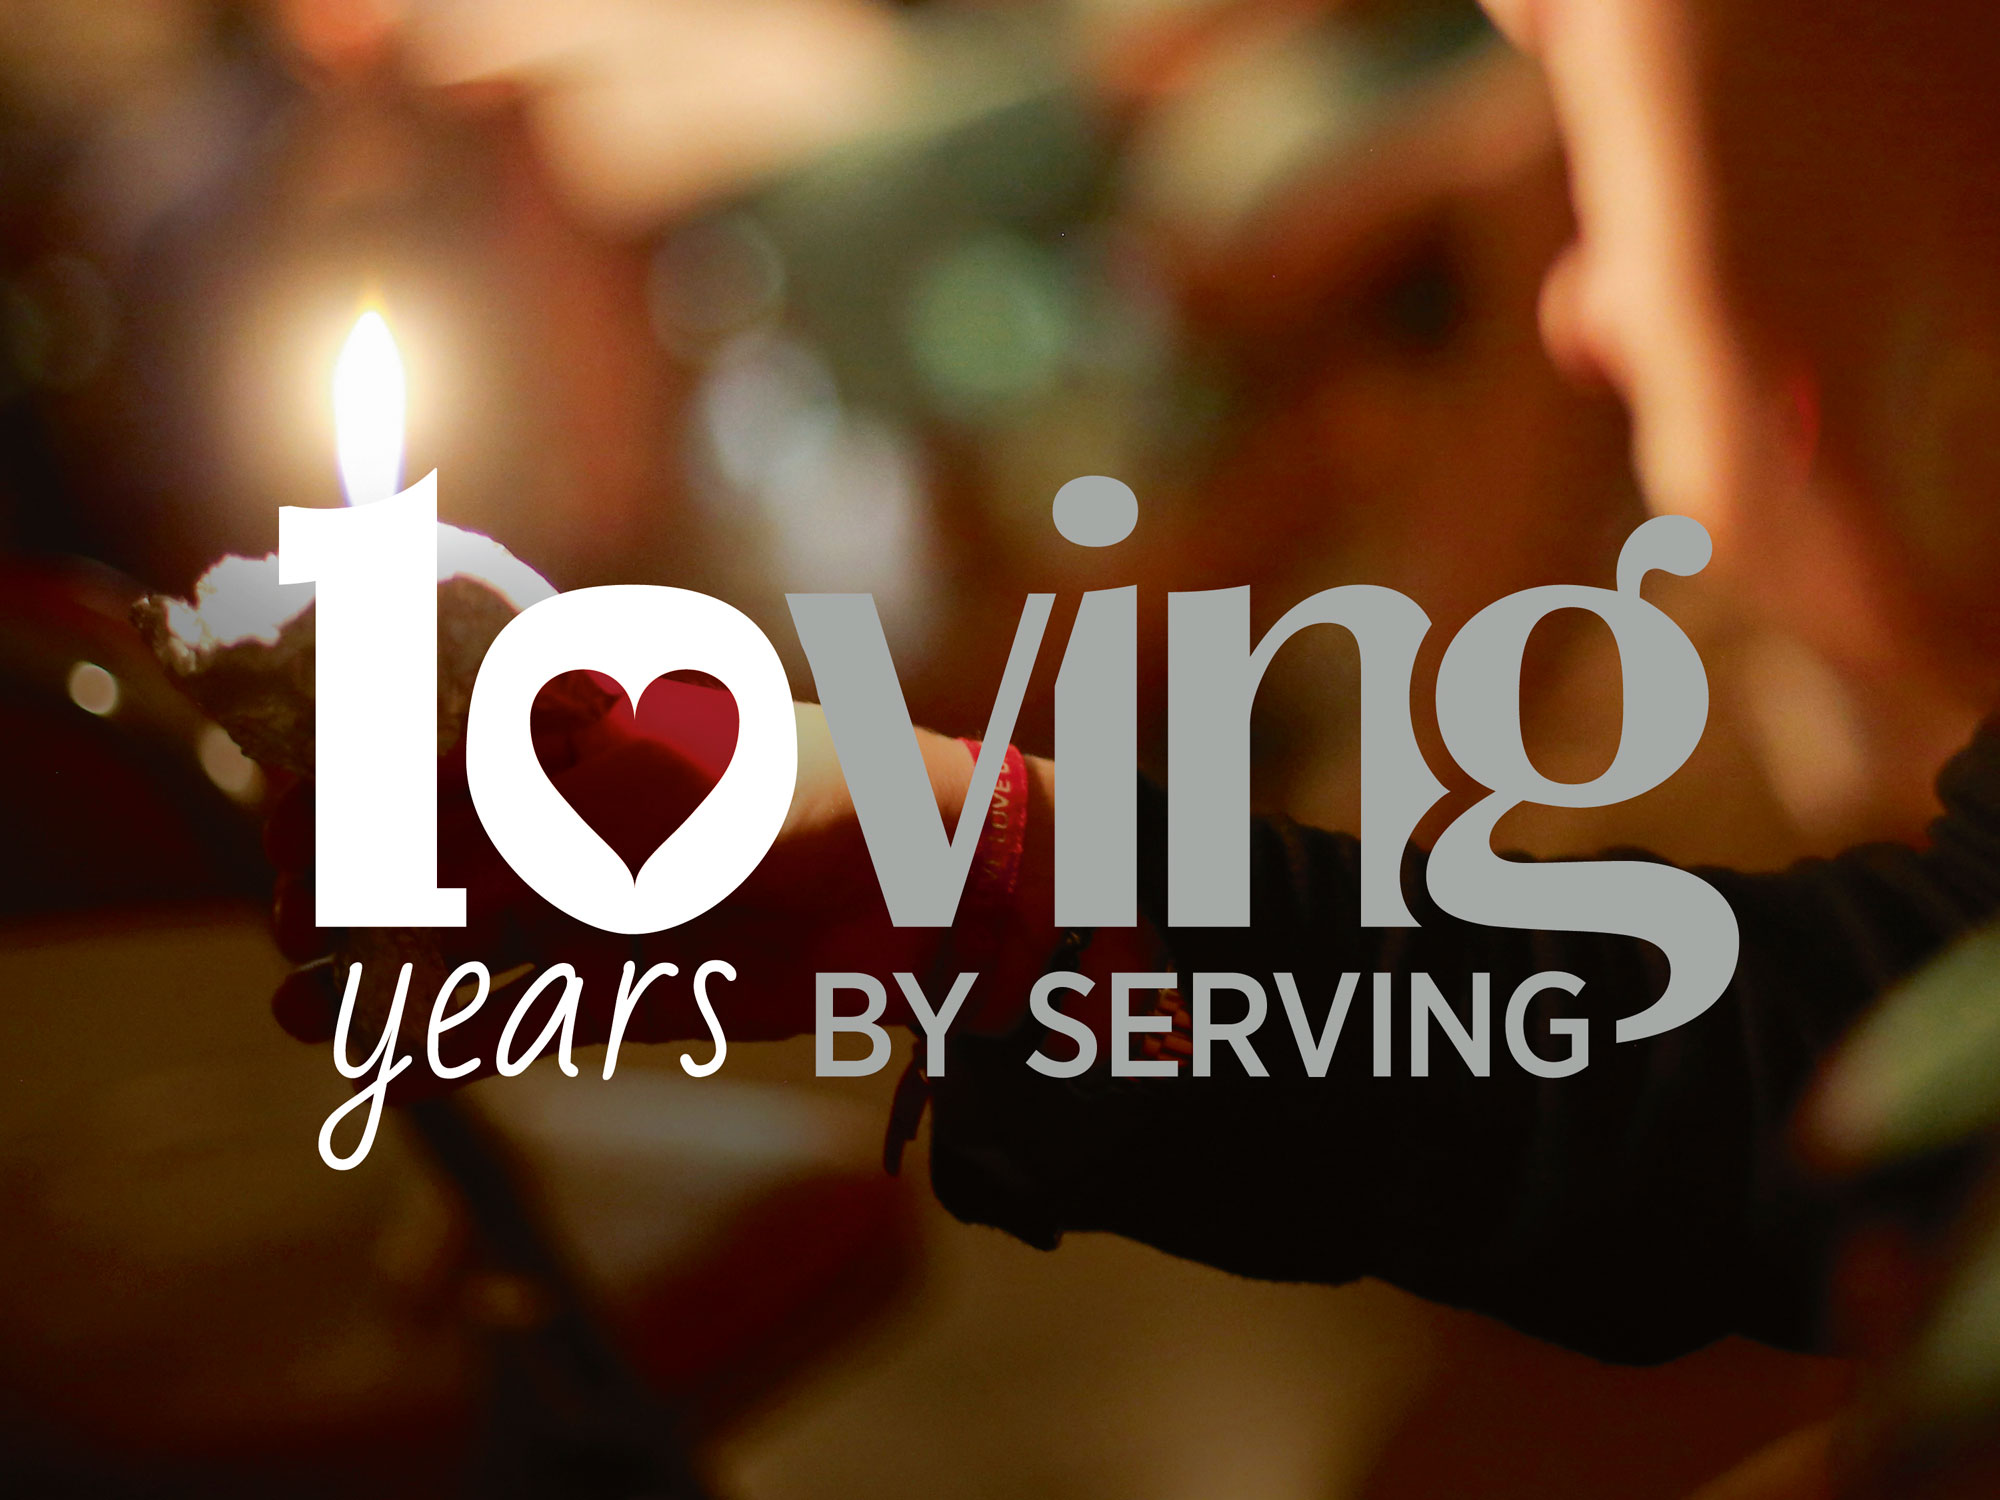 Loving by serving